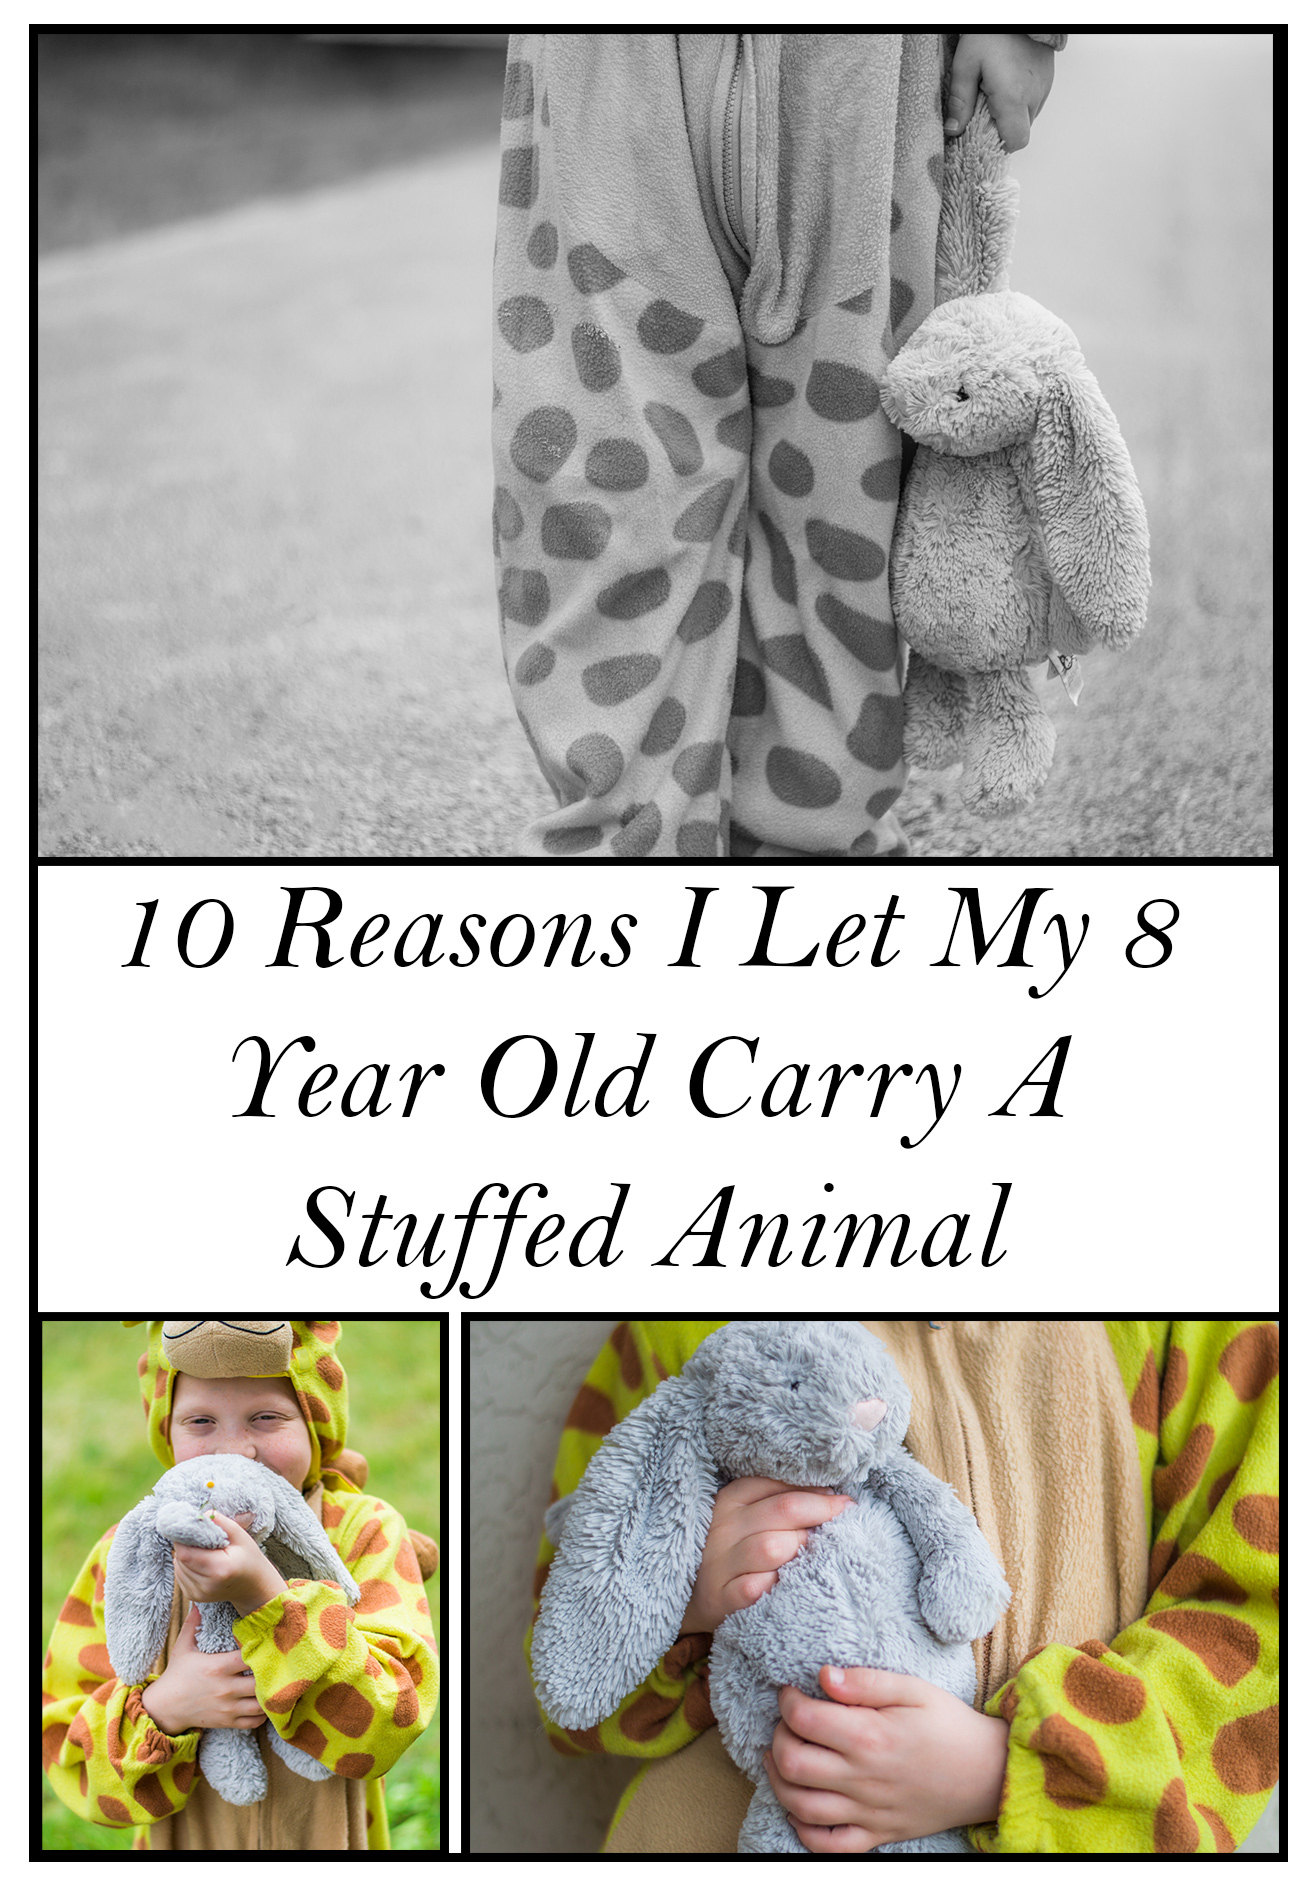 Reasons-I-Let-My-8-Year-Old-Carry-A-Stuffed-Animal